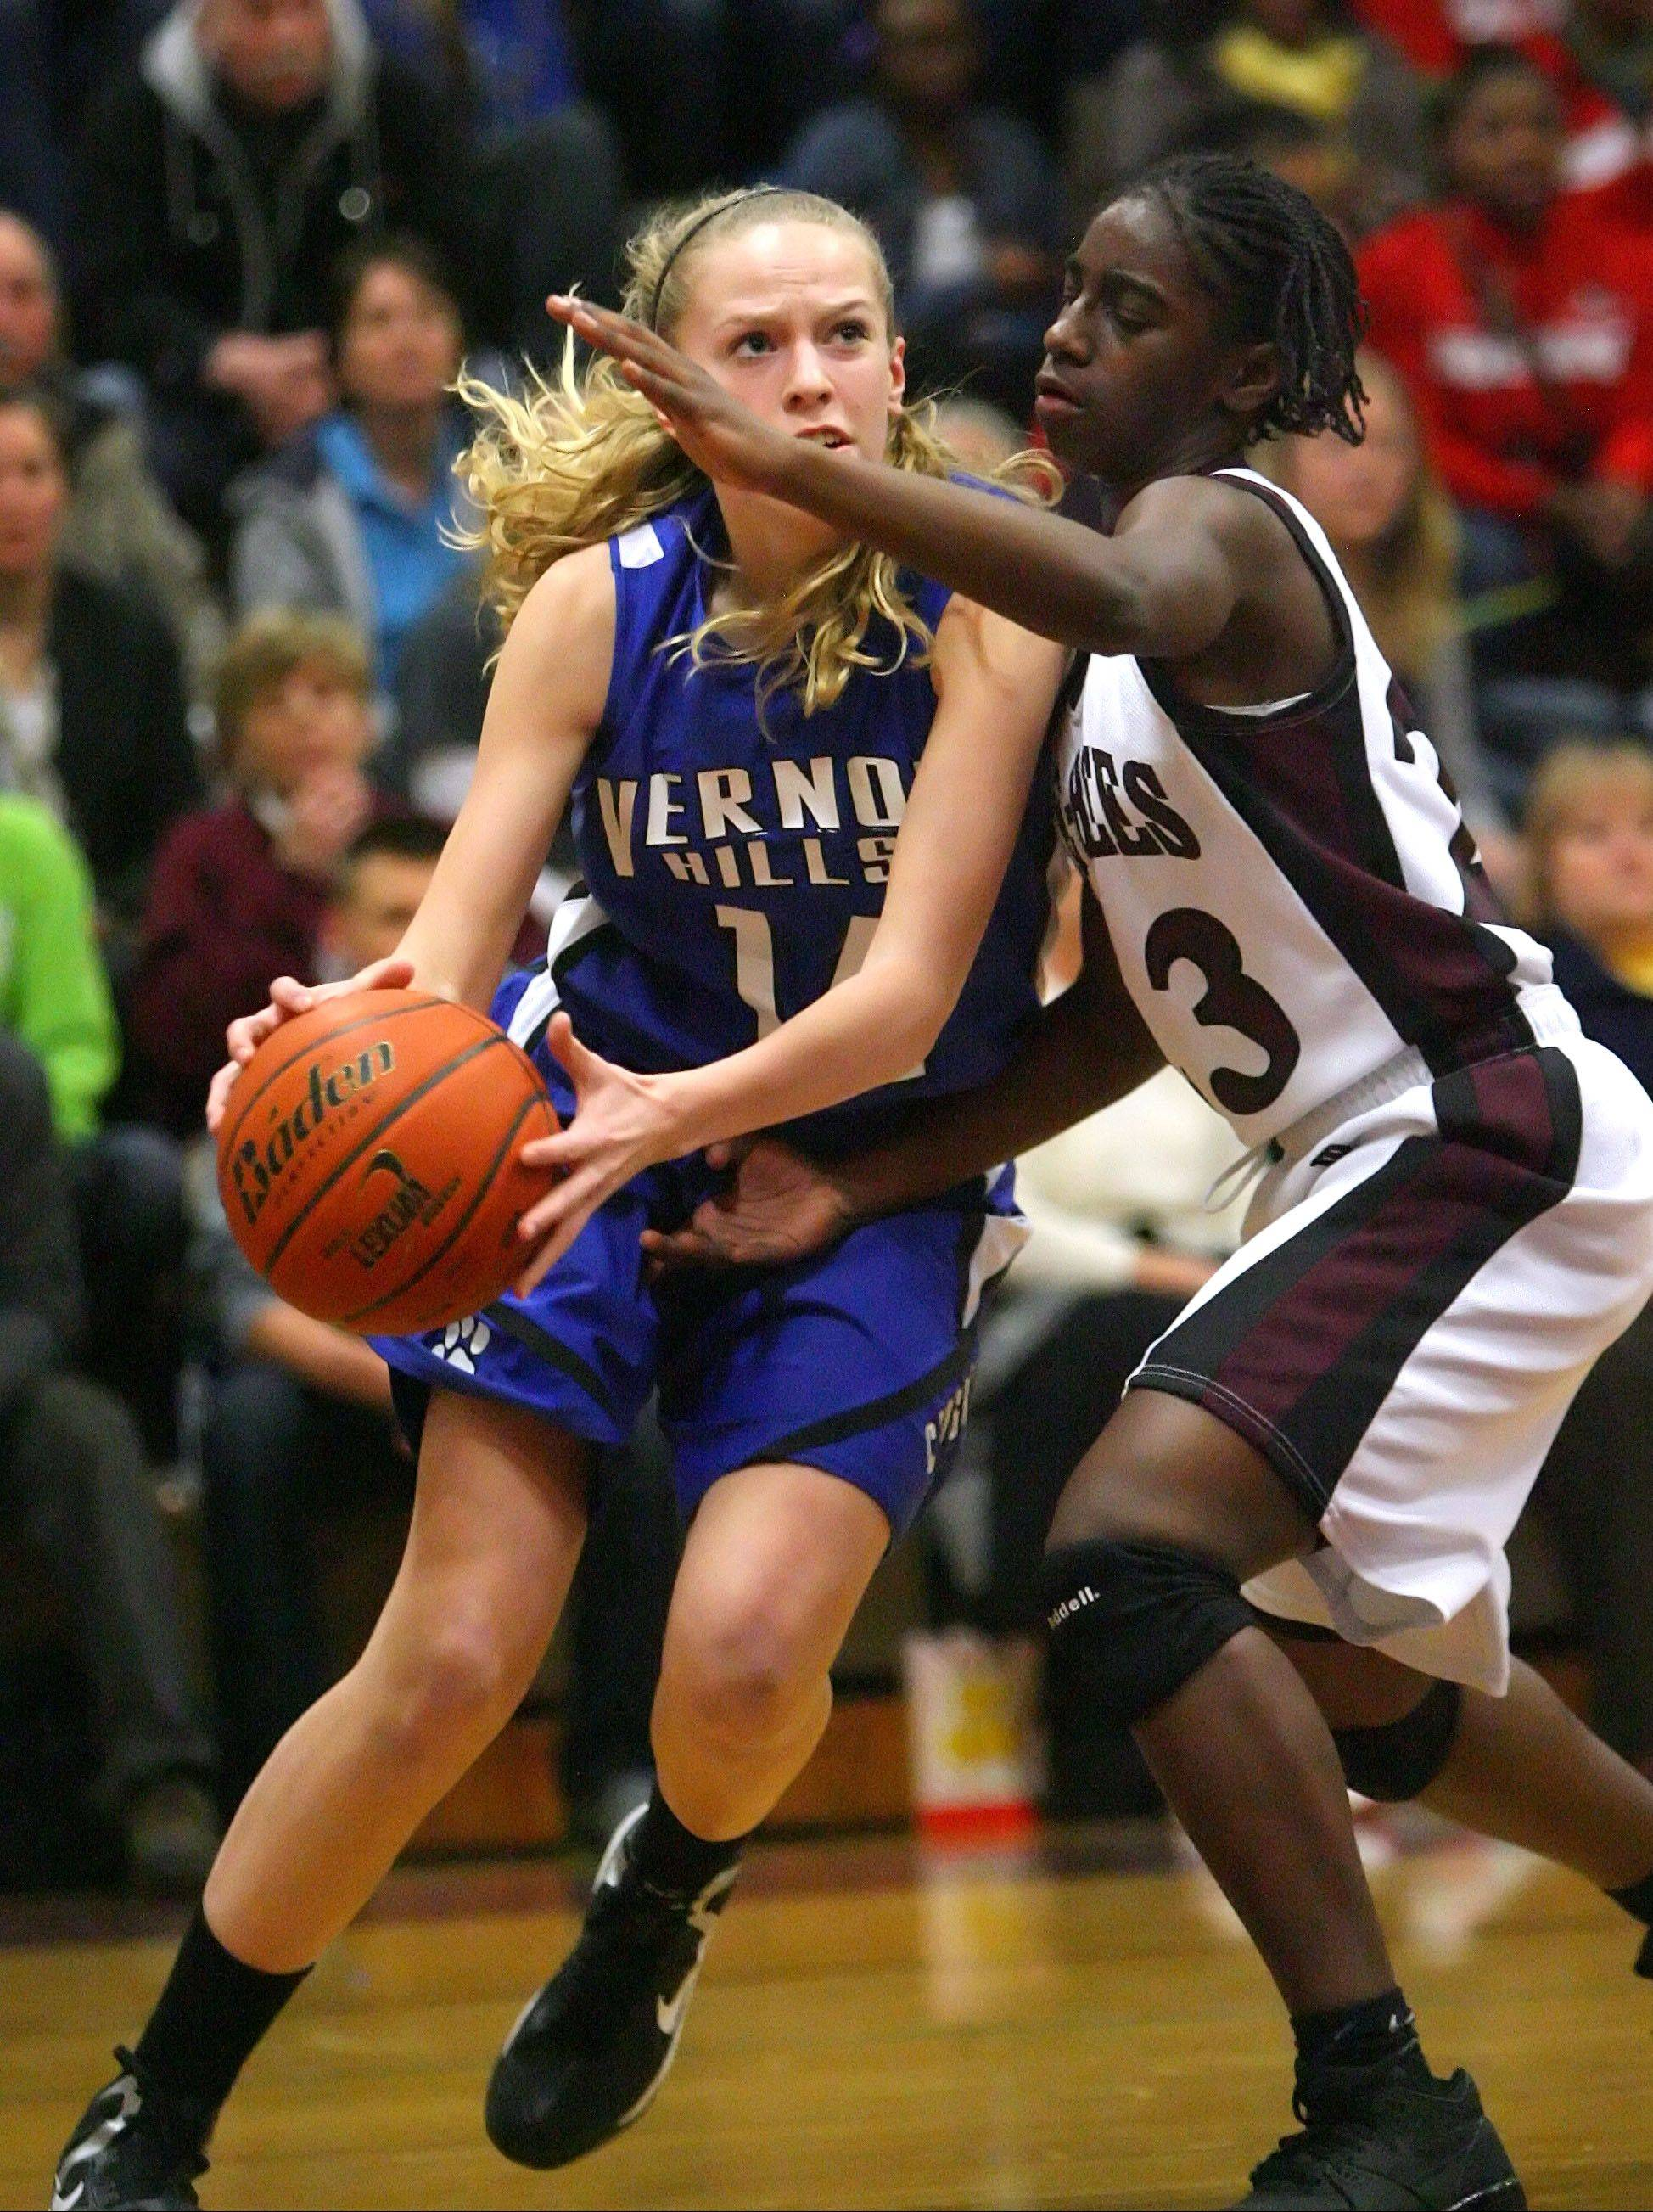 Vernon Hills' Kasey Firnbach, left, drives on Zion-Benton's TT Maggett during the NSC title game Wednesday night at Zion-Benton.